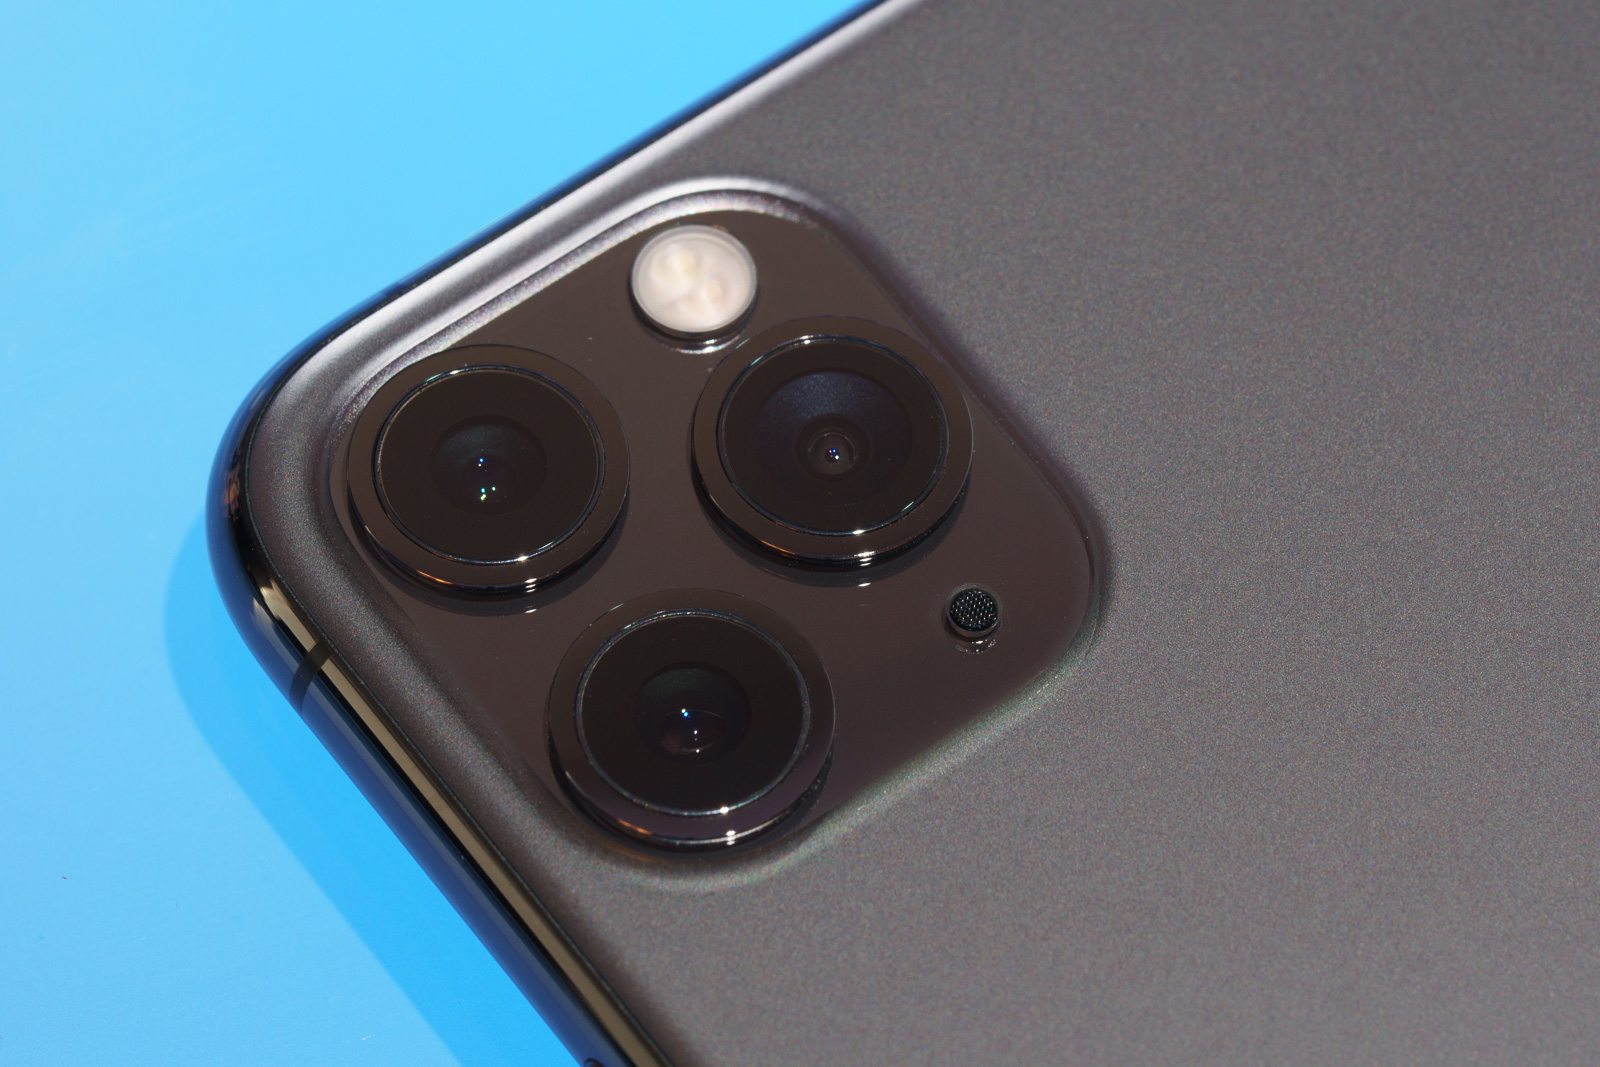 IPhone 11 Pro: Is the camera so good?